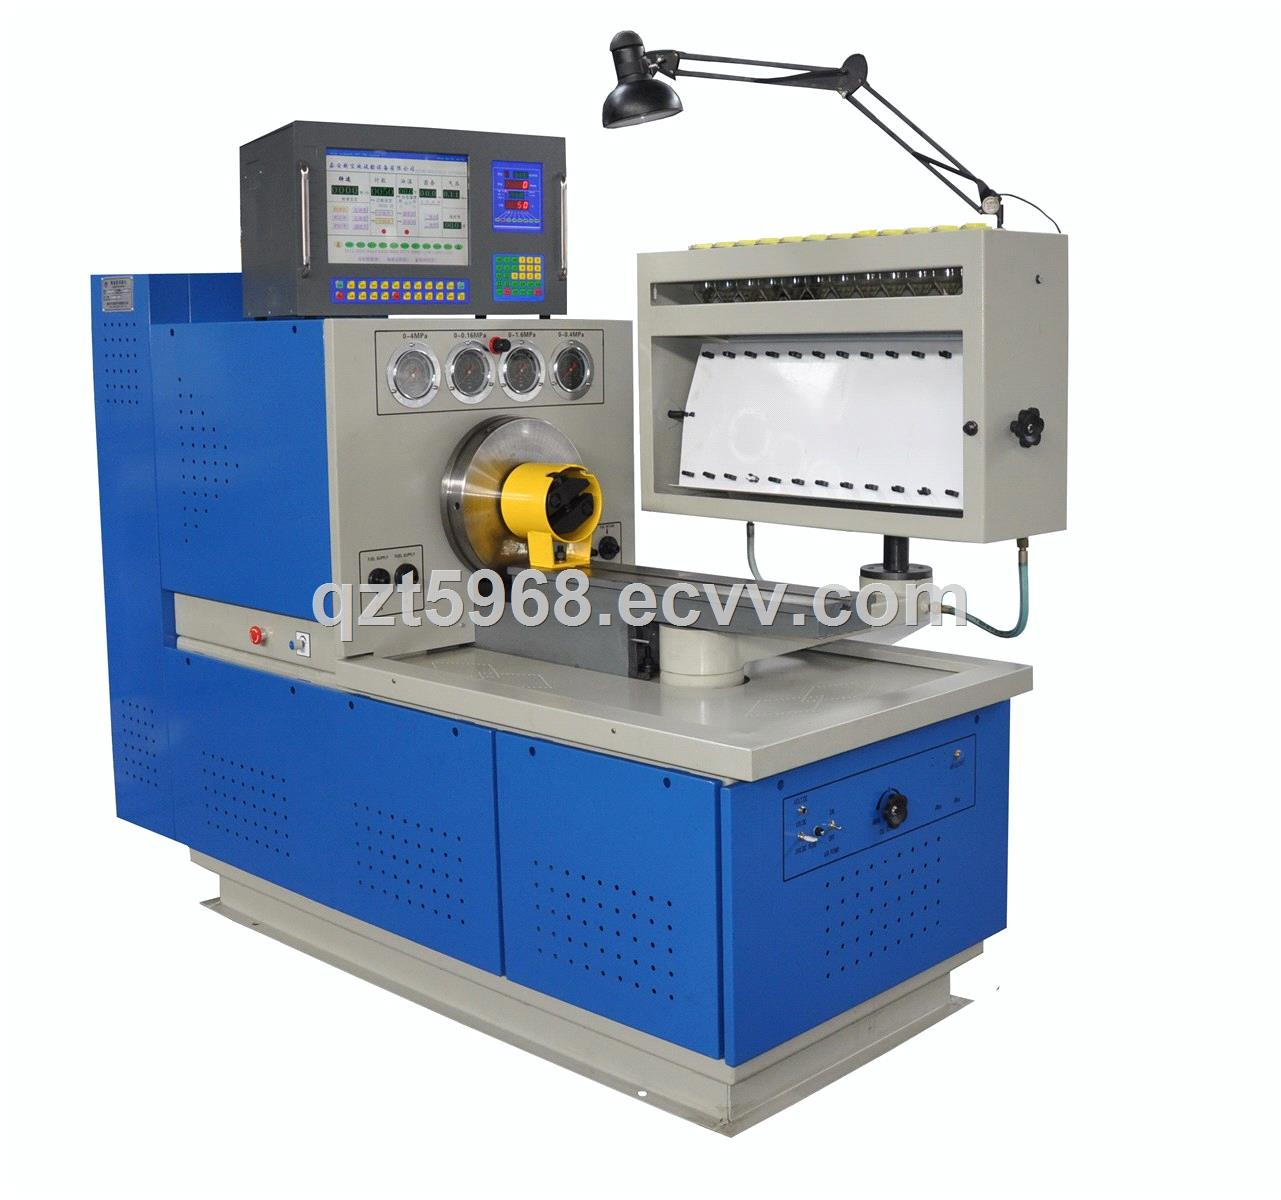 XBD-EMC Diesel Fuel Injection Pump Test Bench